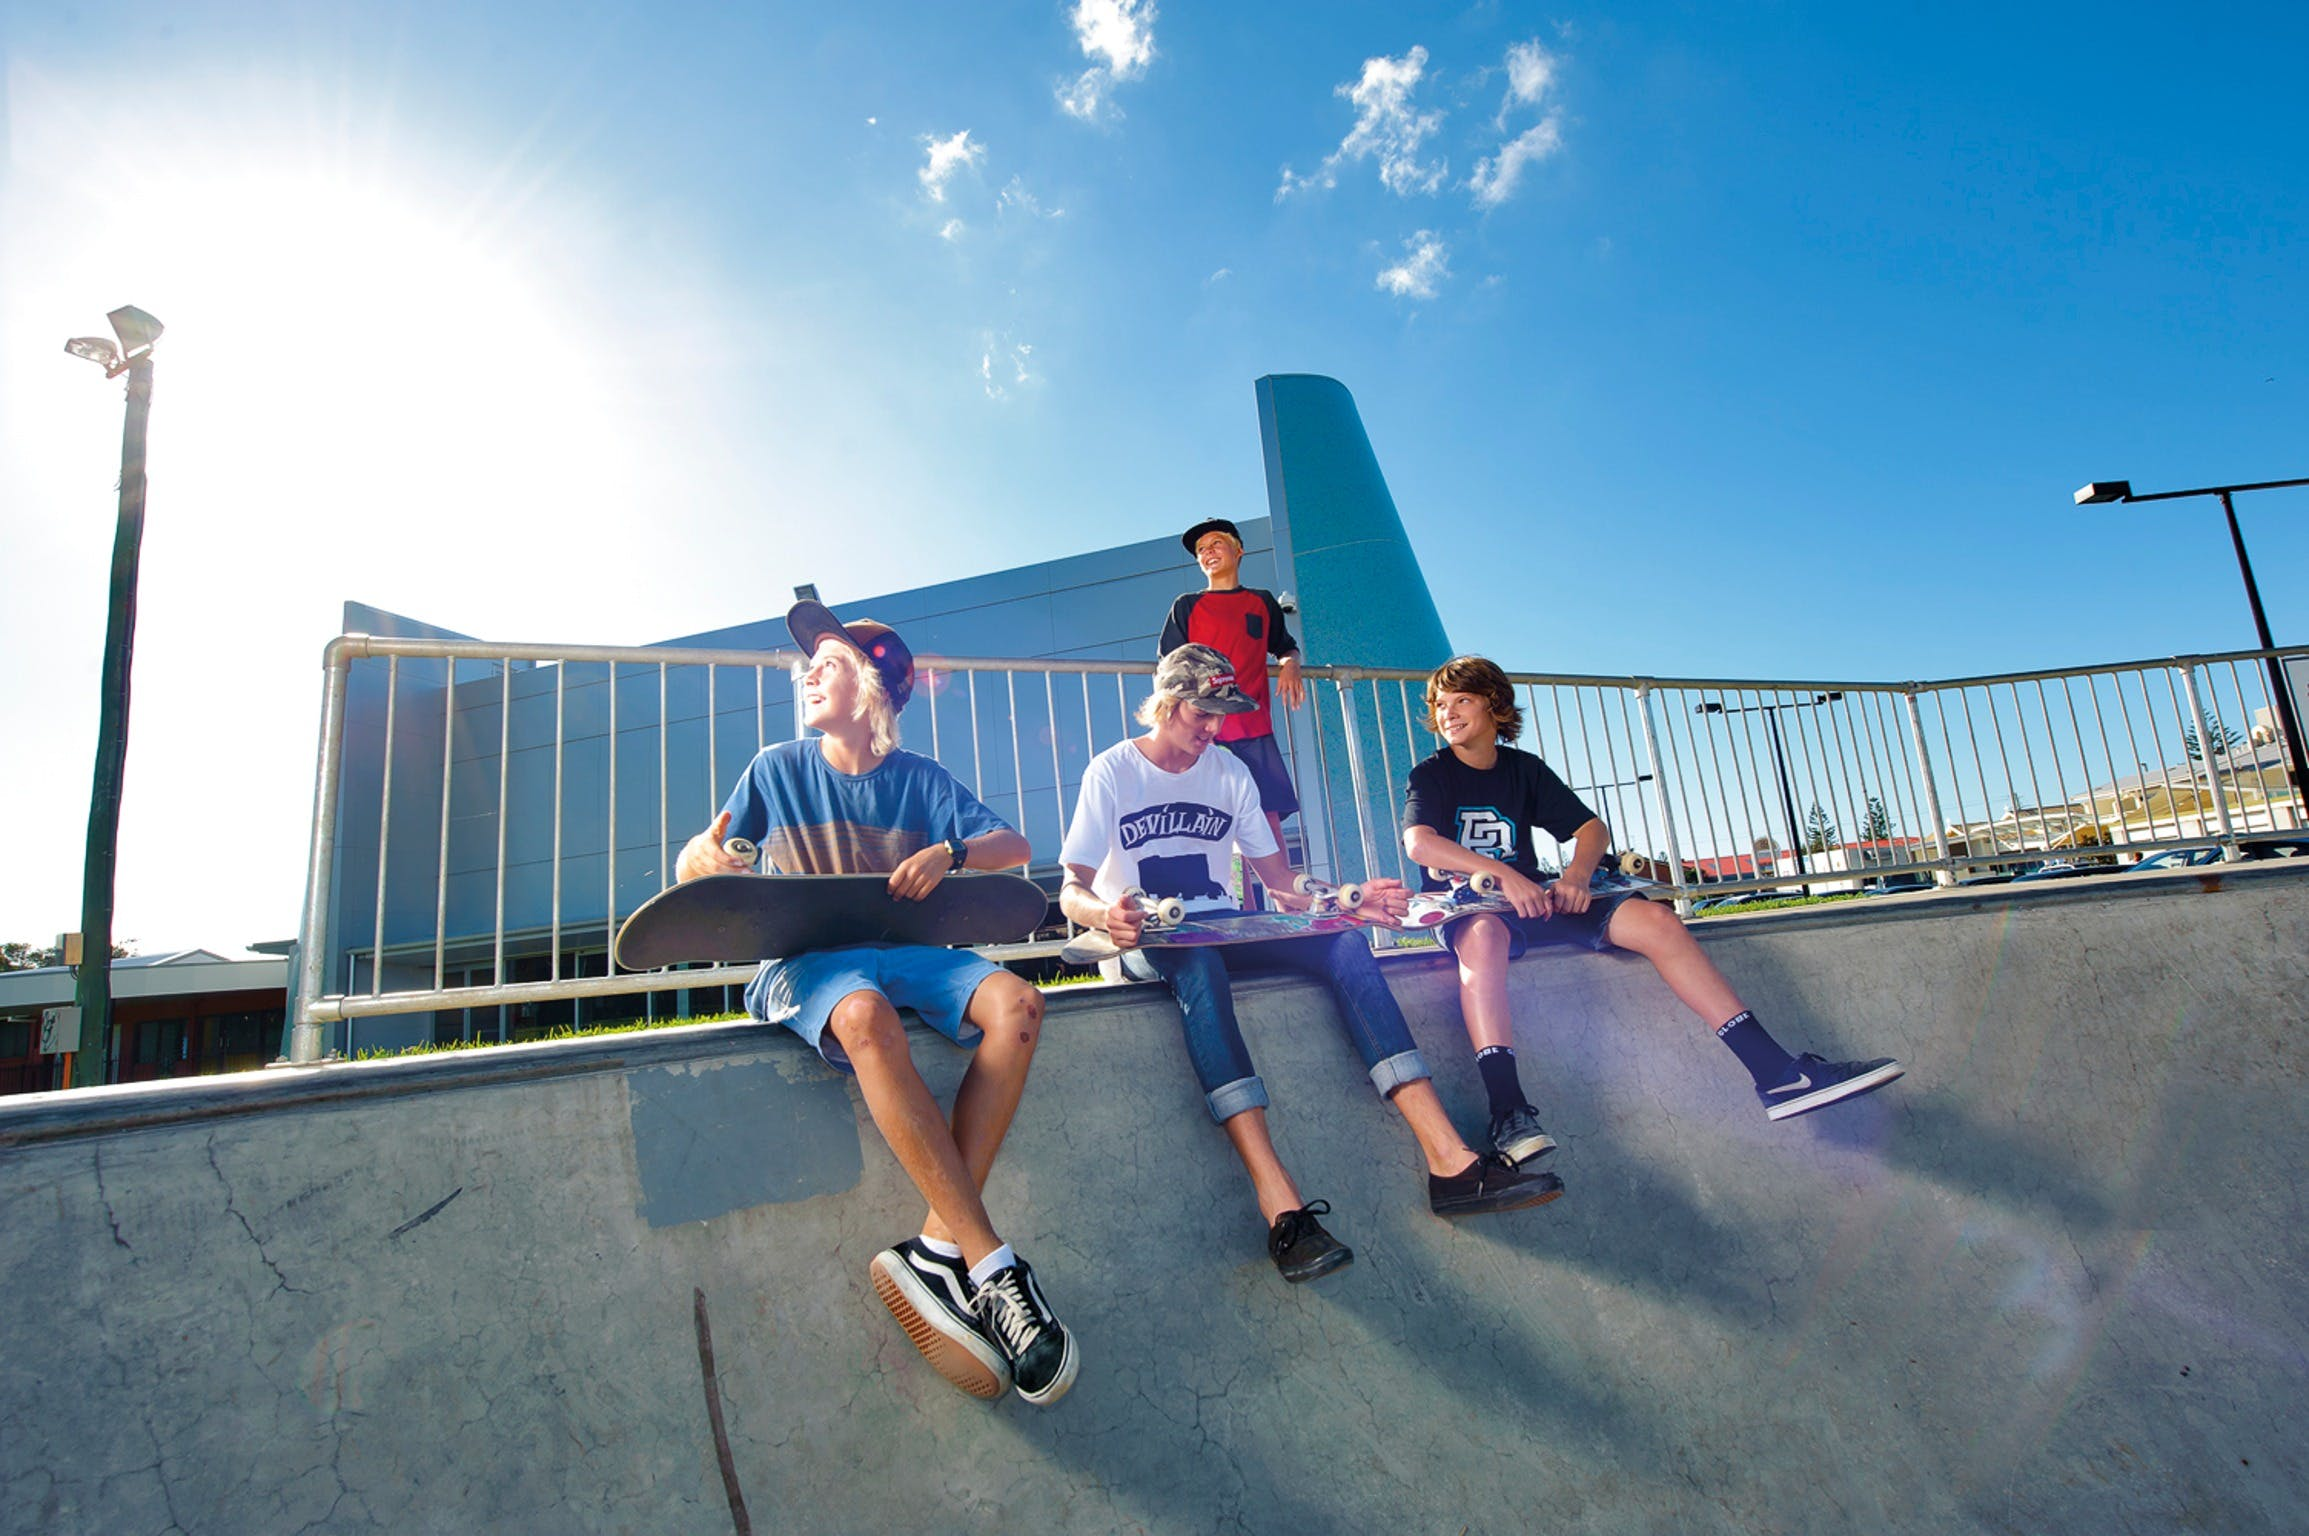 Fair Go Skate Comp - QLD Tourism